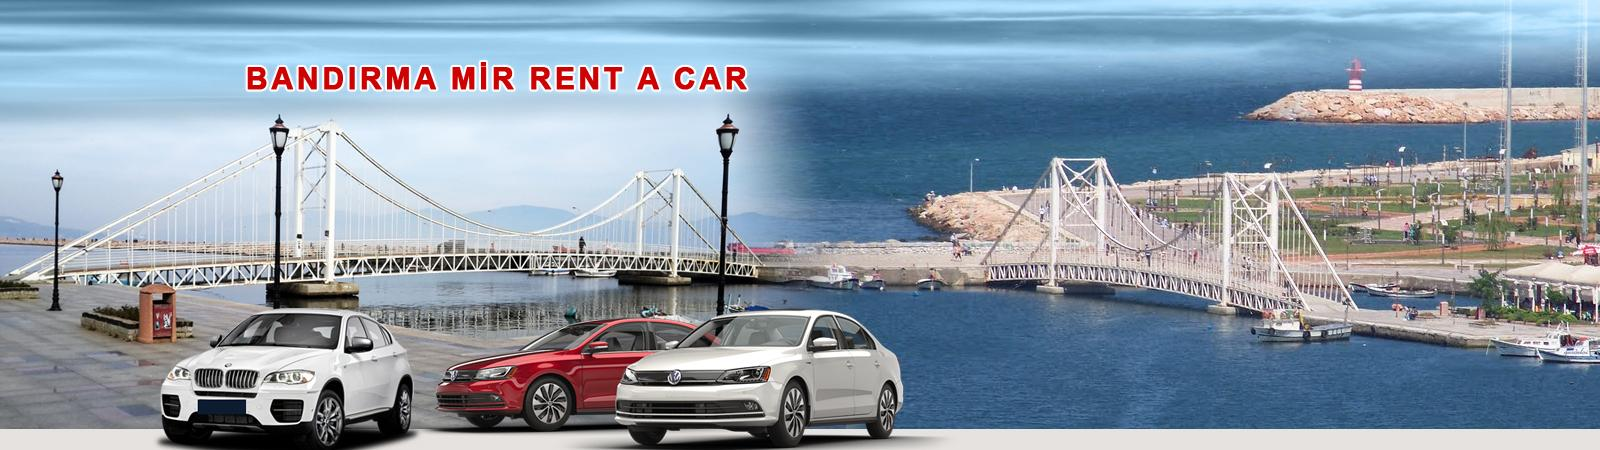 bandirma rent a car